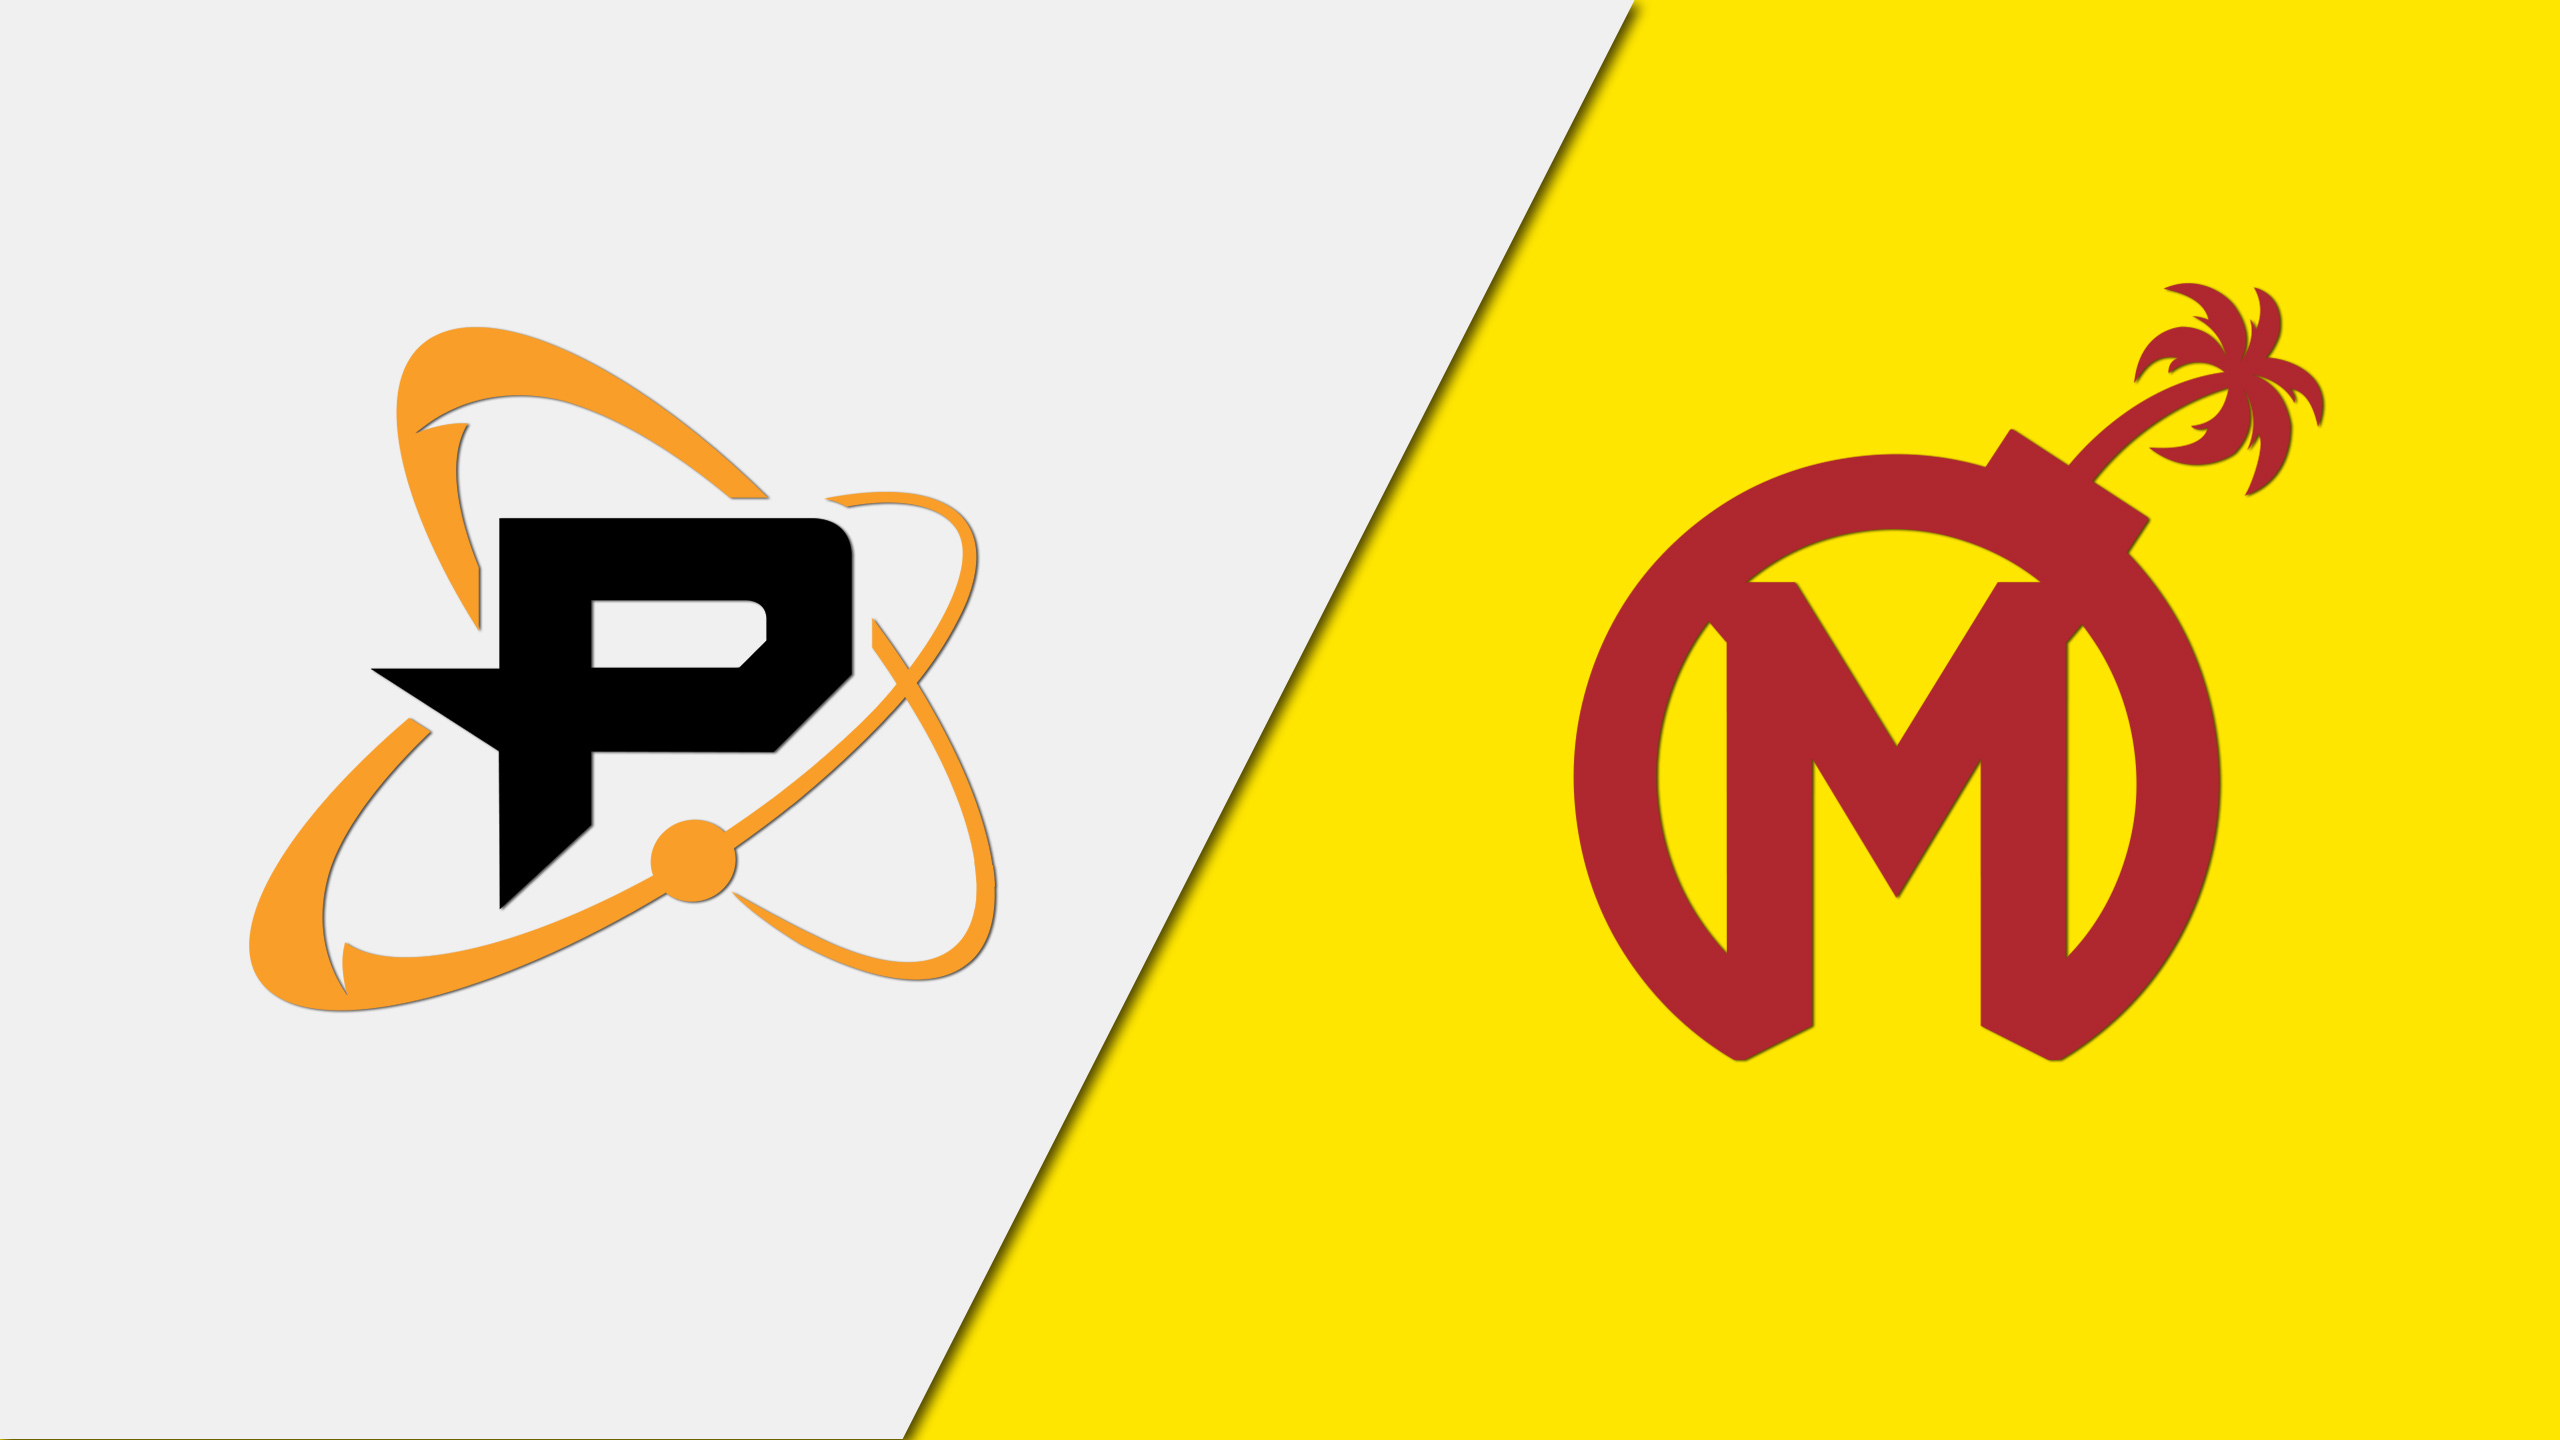 Philadelphia Fusion vs. Florida Mayhem